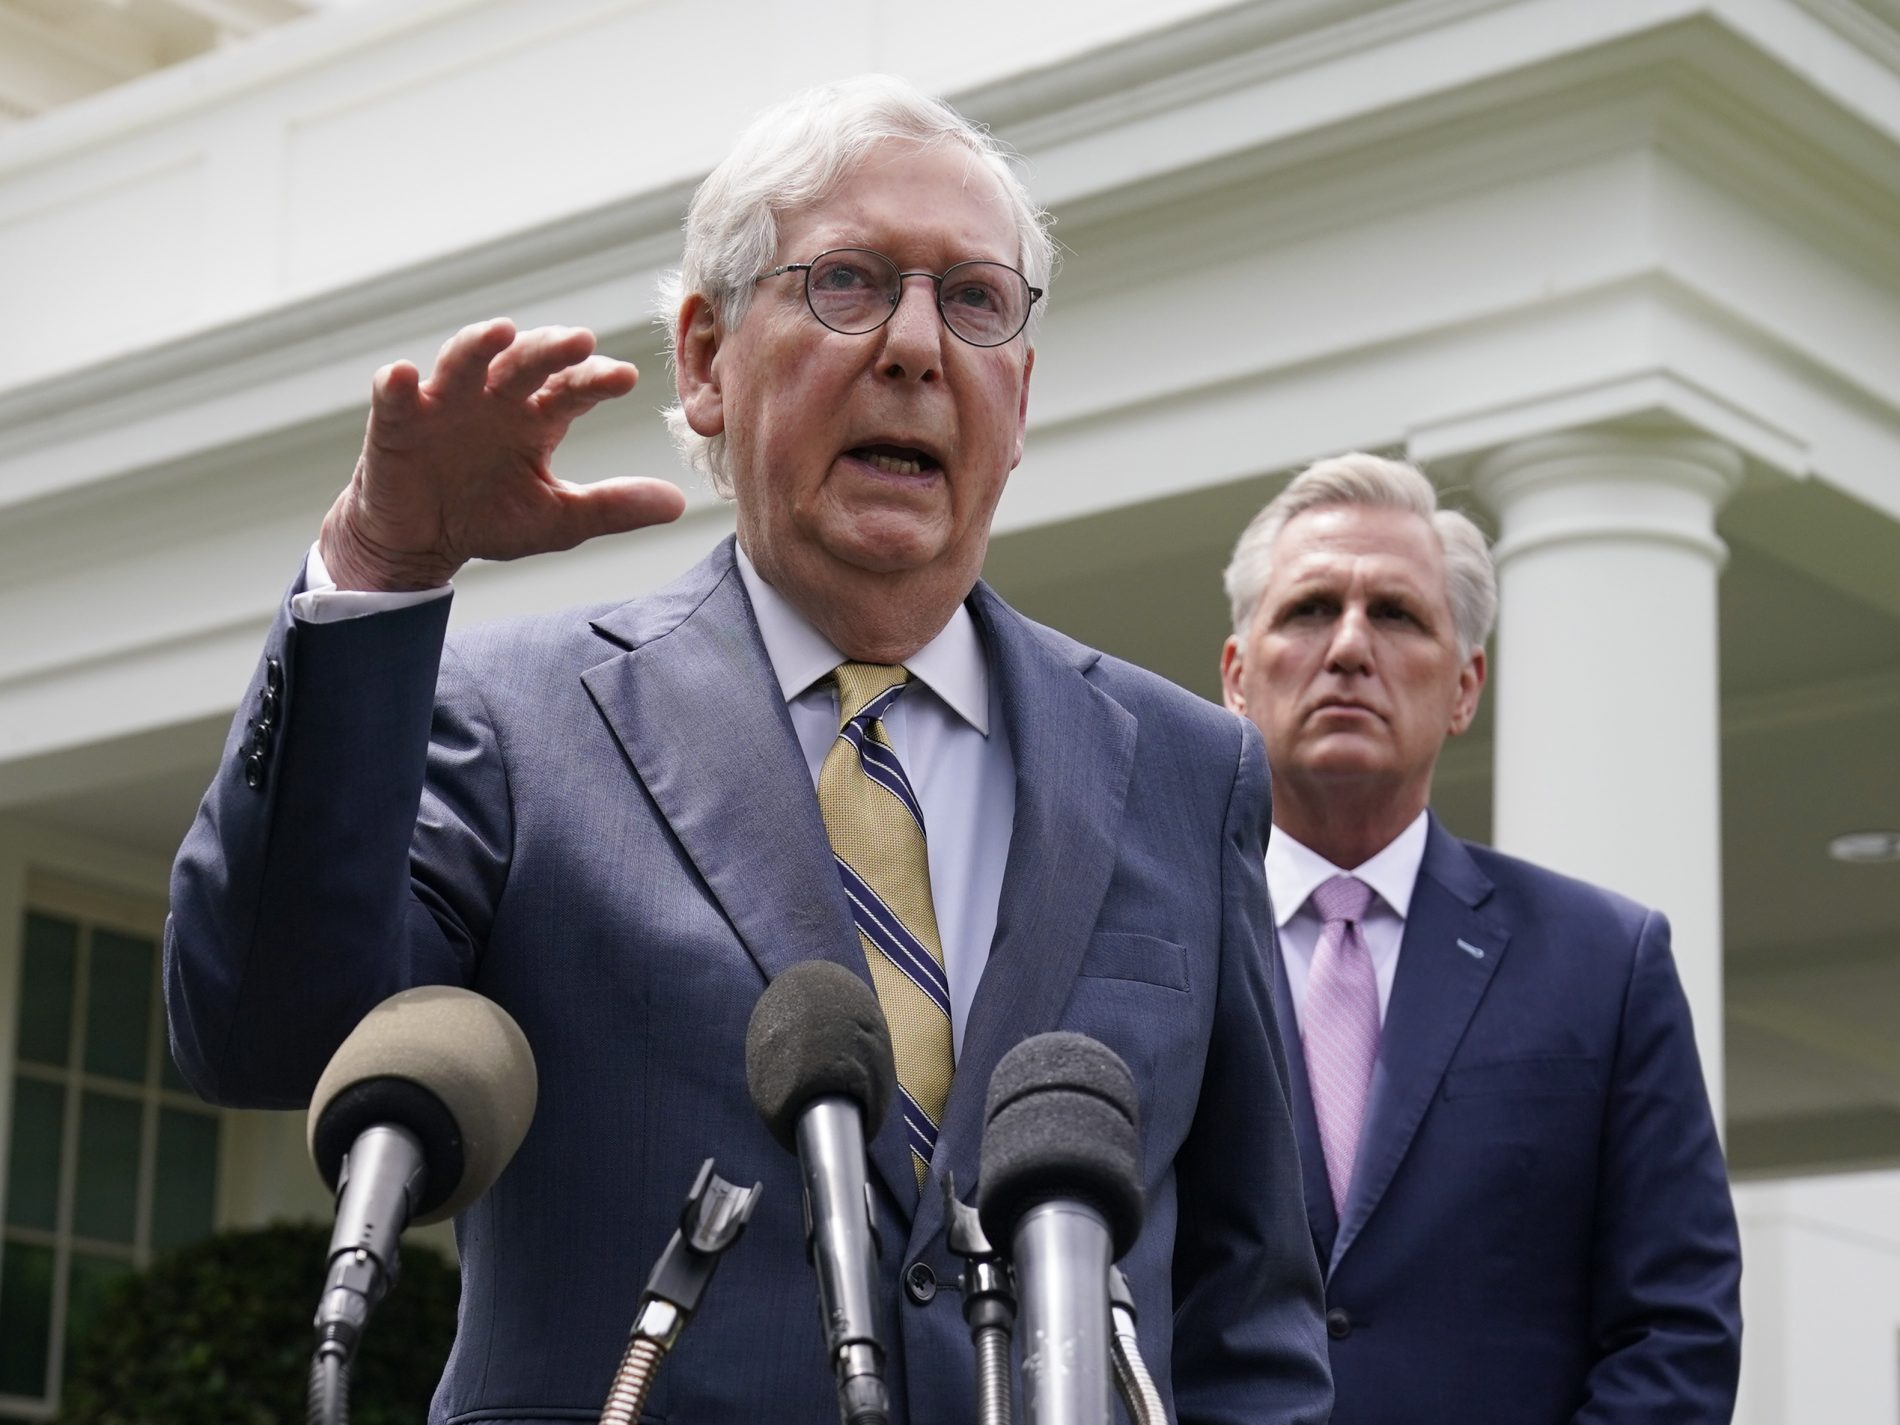 Senate Minority Leader Mitch McConnell, left, and House Minority Leader Kevin McCarthy speak to reporters outside the White House after meeting with President Biden Wednesday. (Evan Vucci/AP Photo)